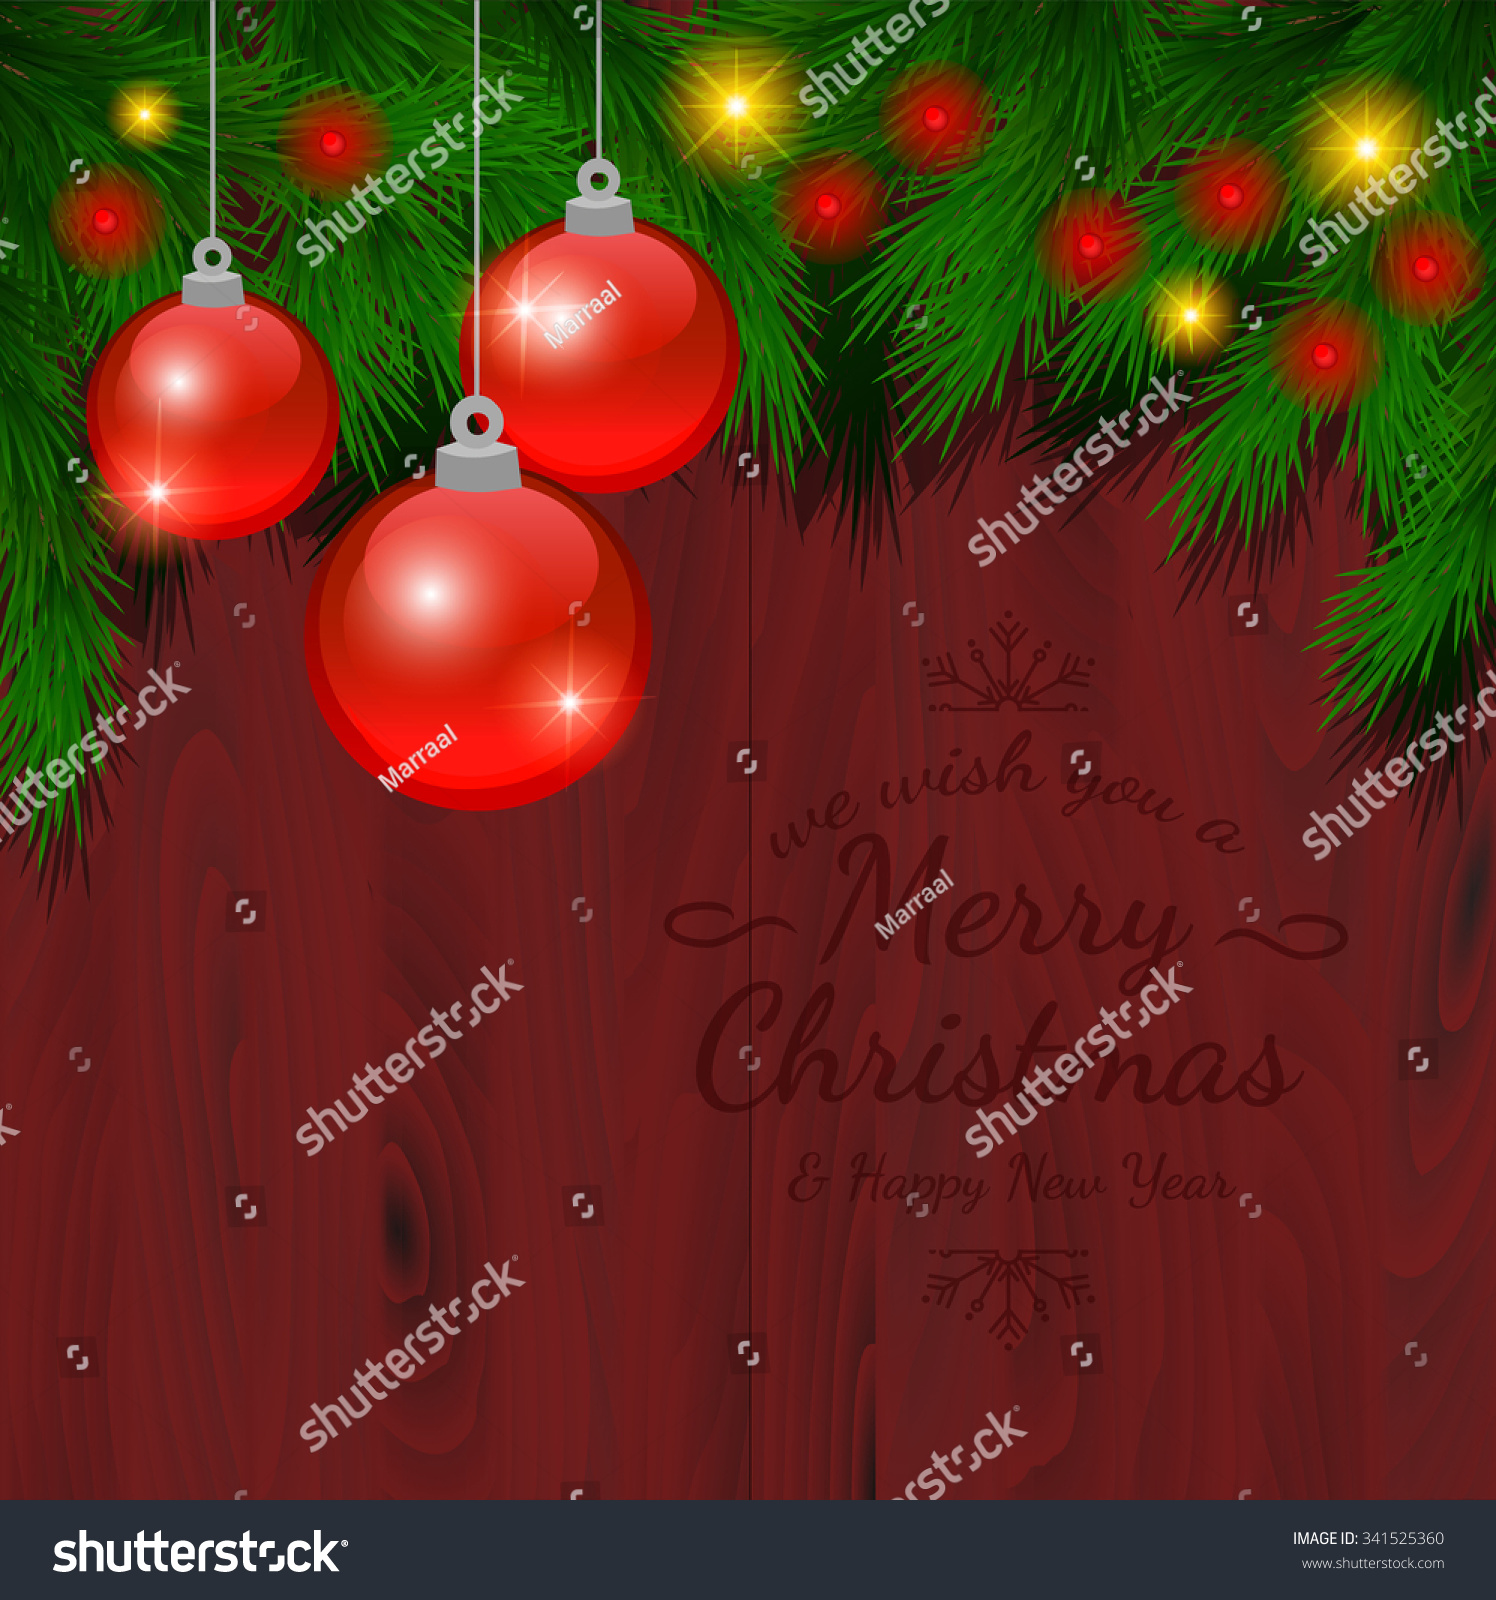 Christmas Card Ornaments Realistic Spruce Pine Stock Vector (Royalty ...